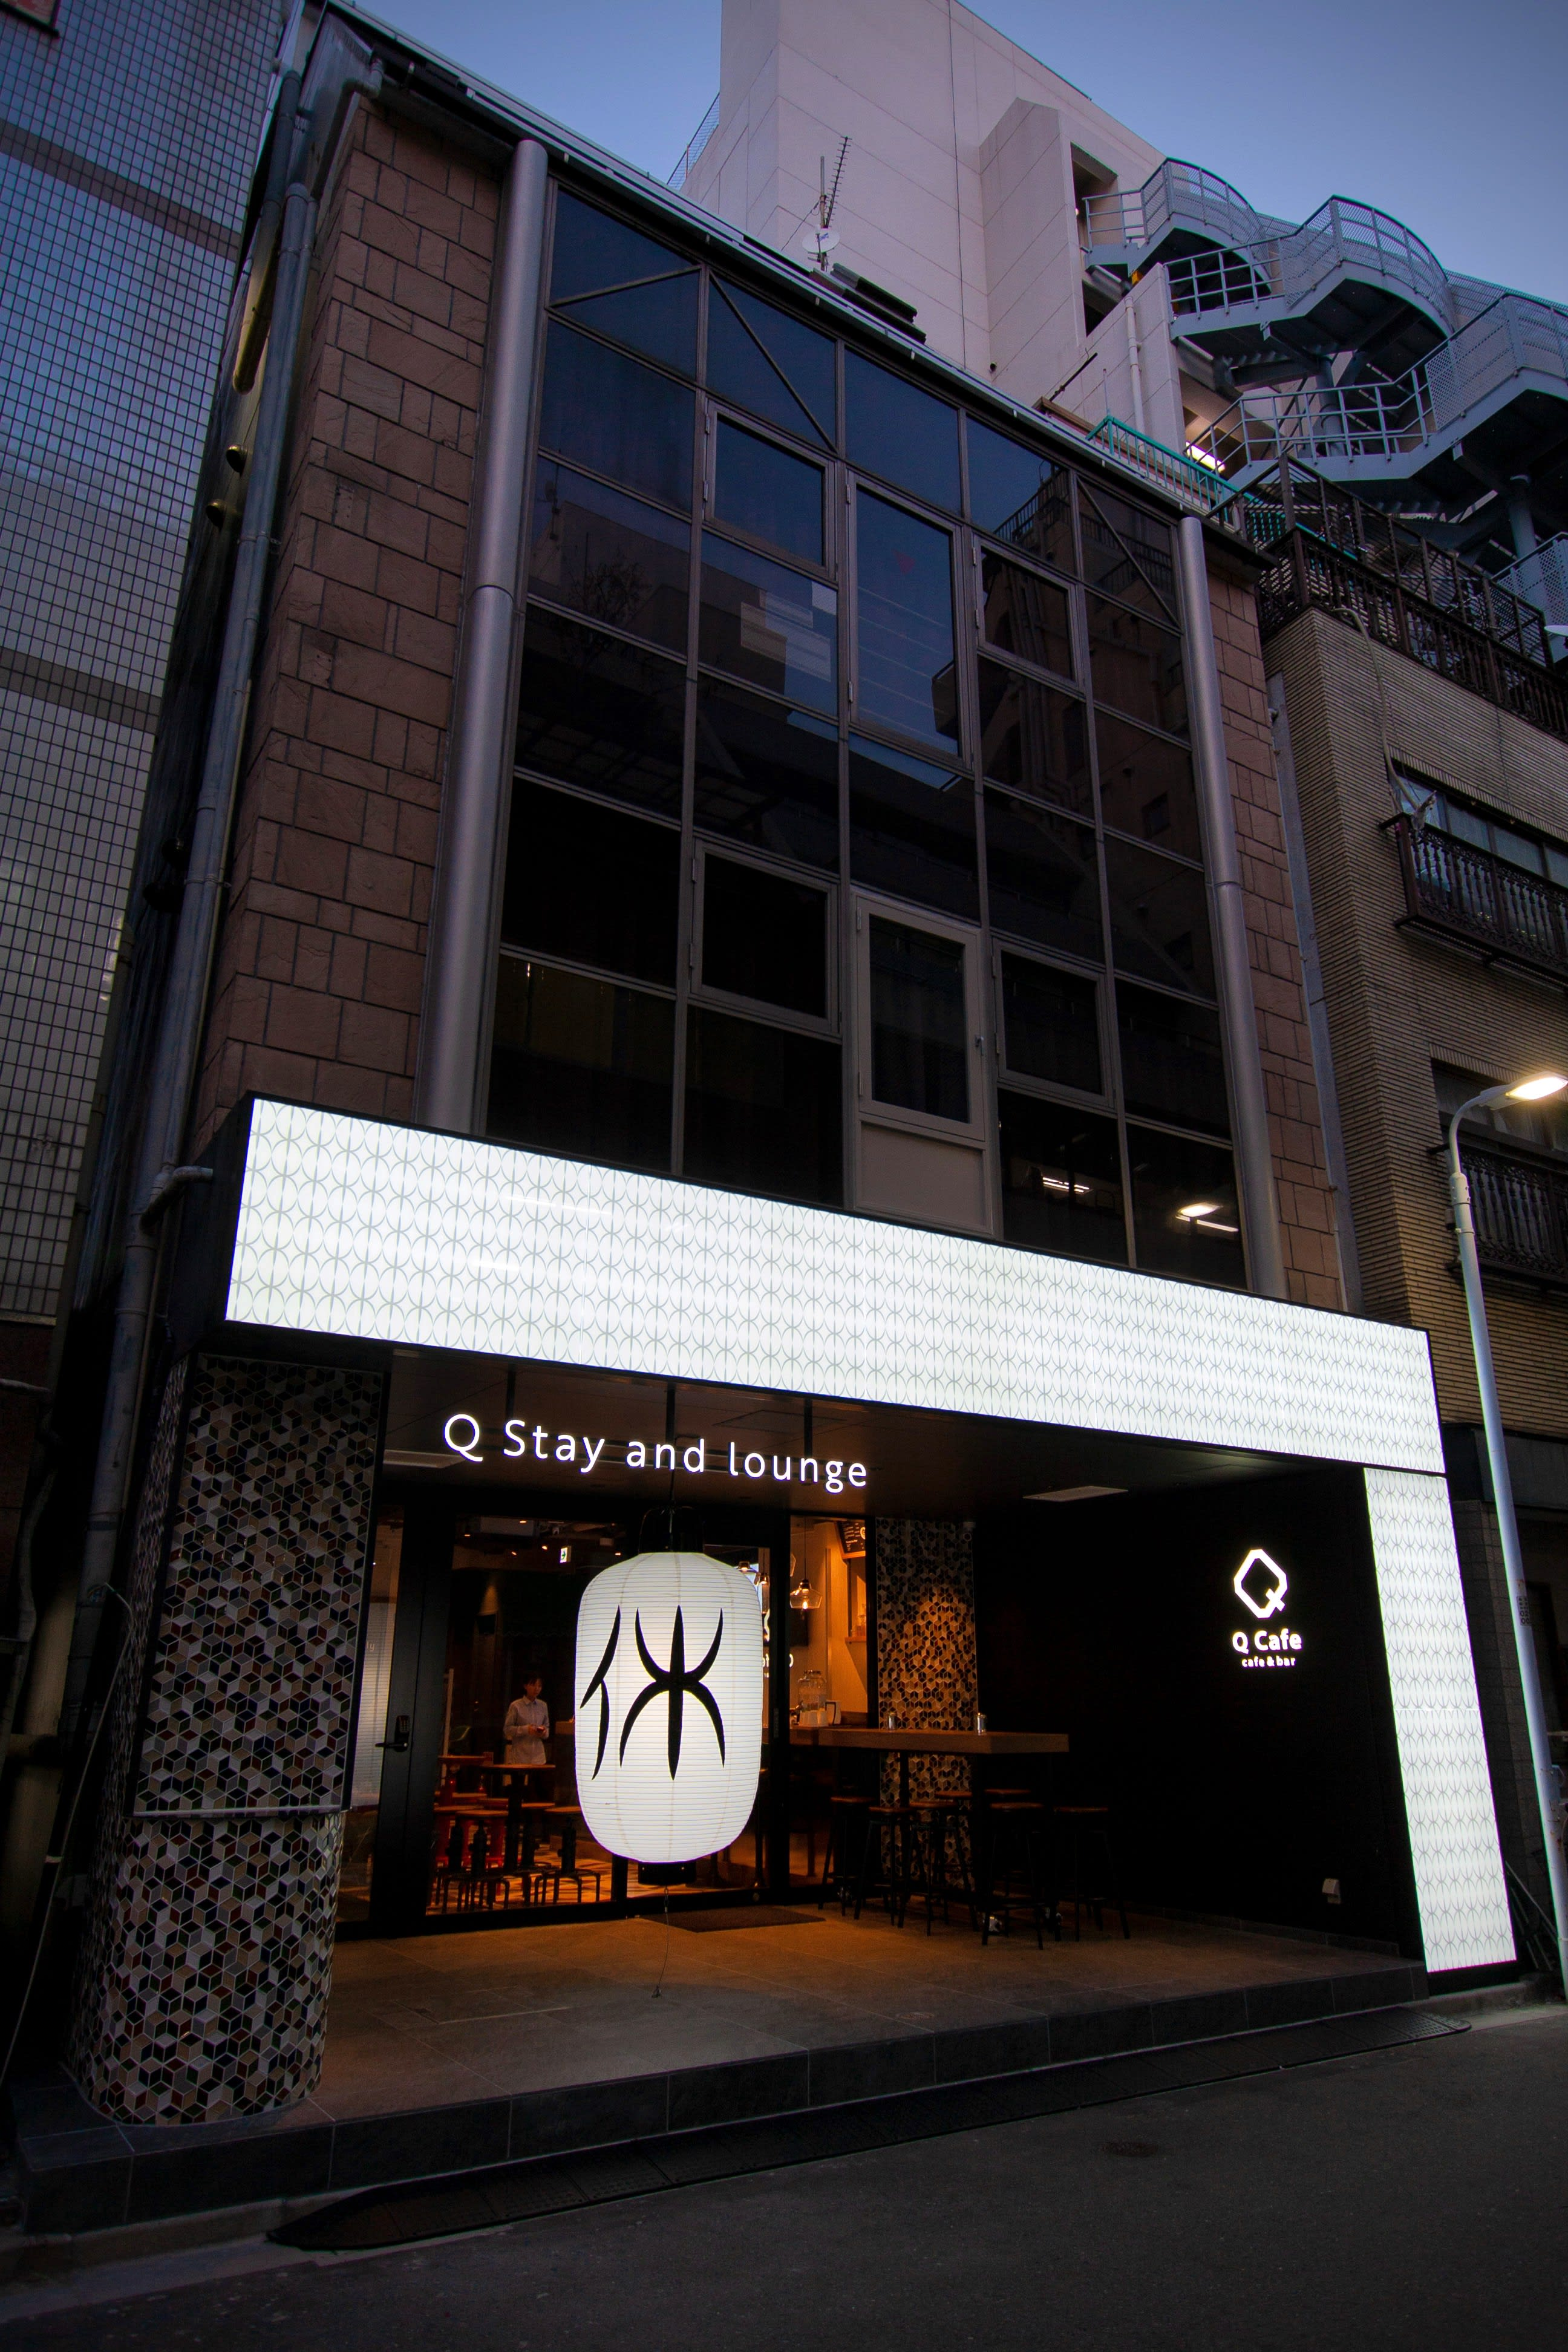 HOSTEL - Q Stay and lounge Ueno